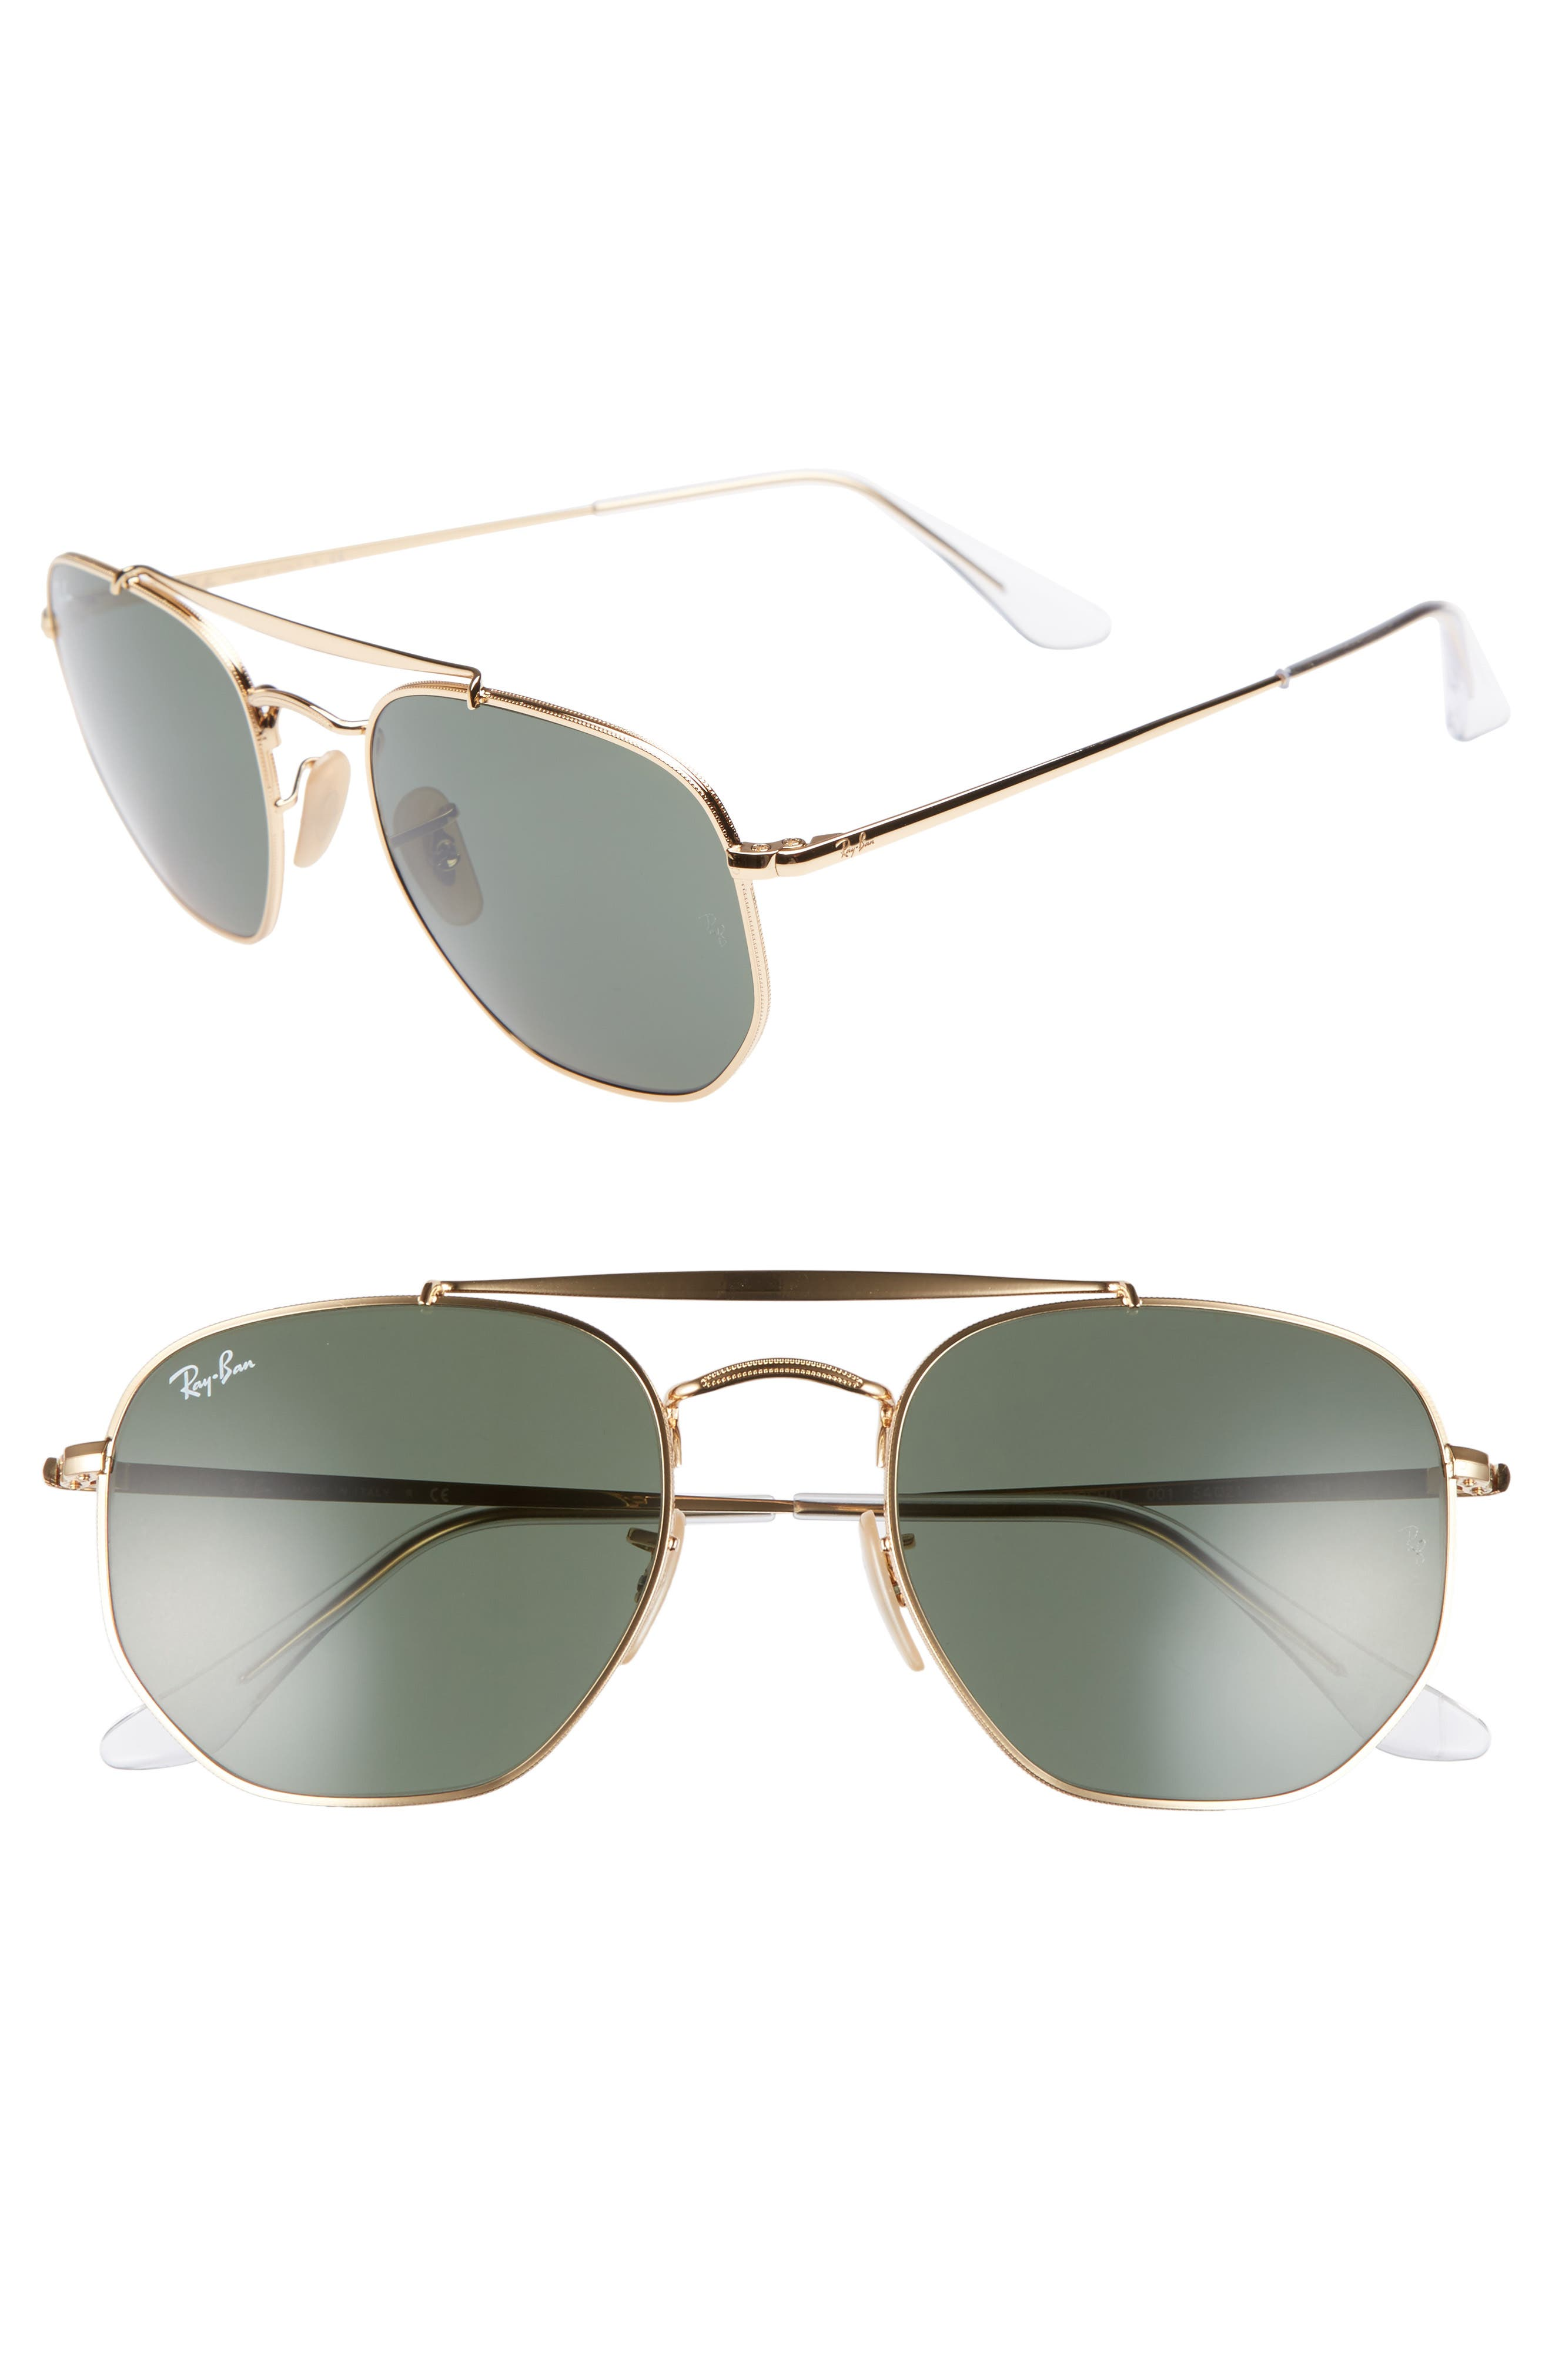 Marshal 54mm Aviator Sunglasses,                         Main,                         color, Gold/ Green